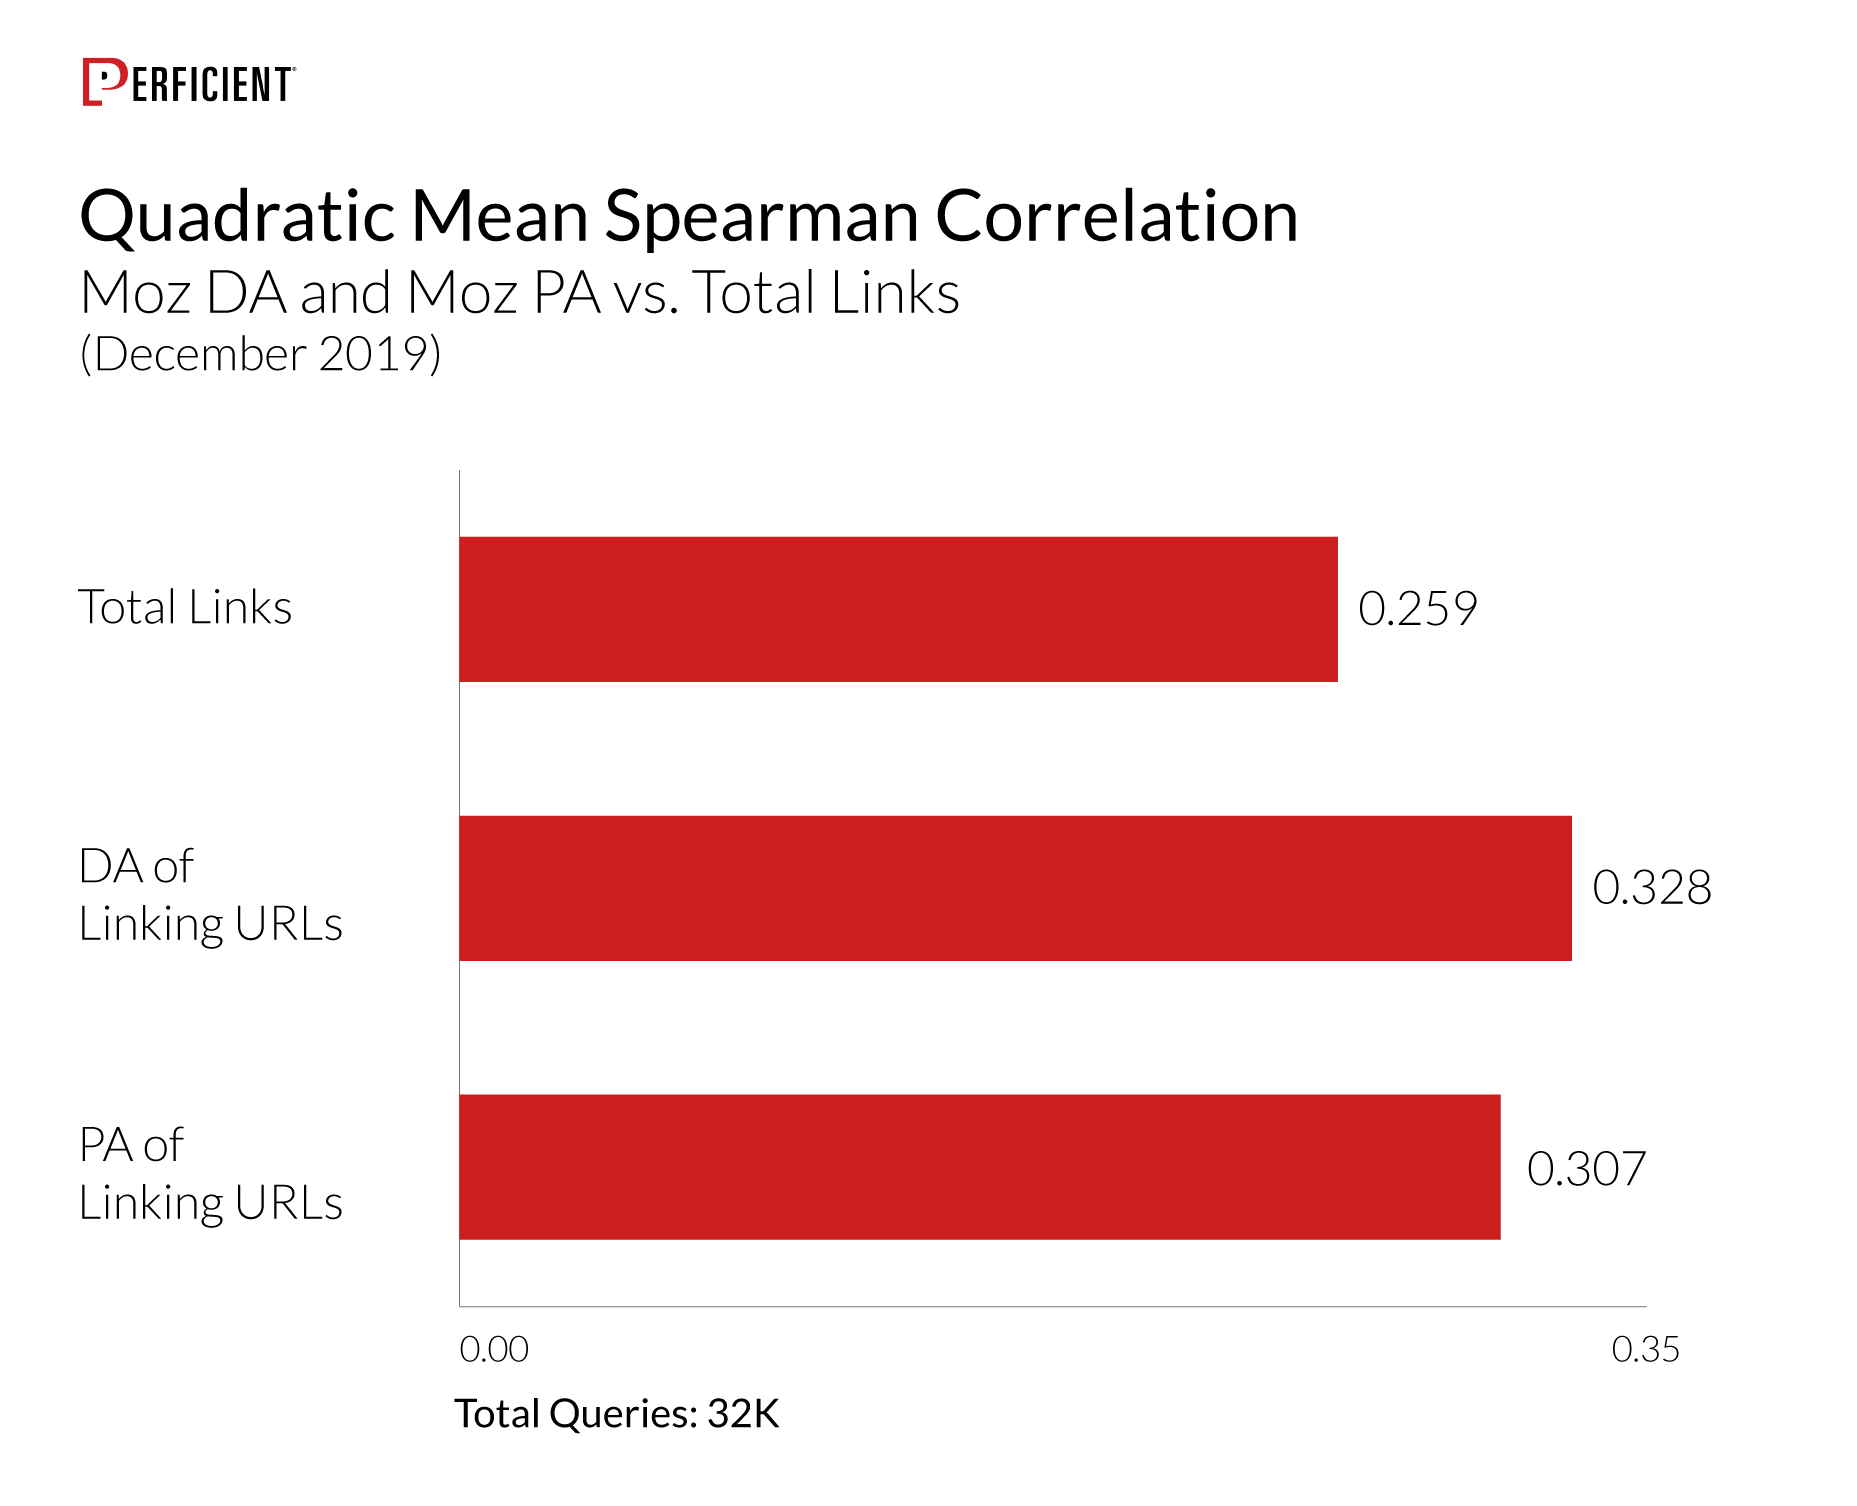 Correlation of Moz DA and Moz PA vs Total Links for 32K queries